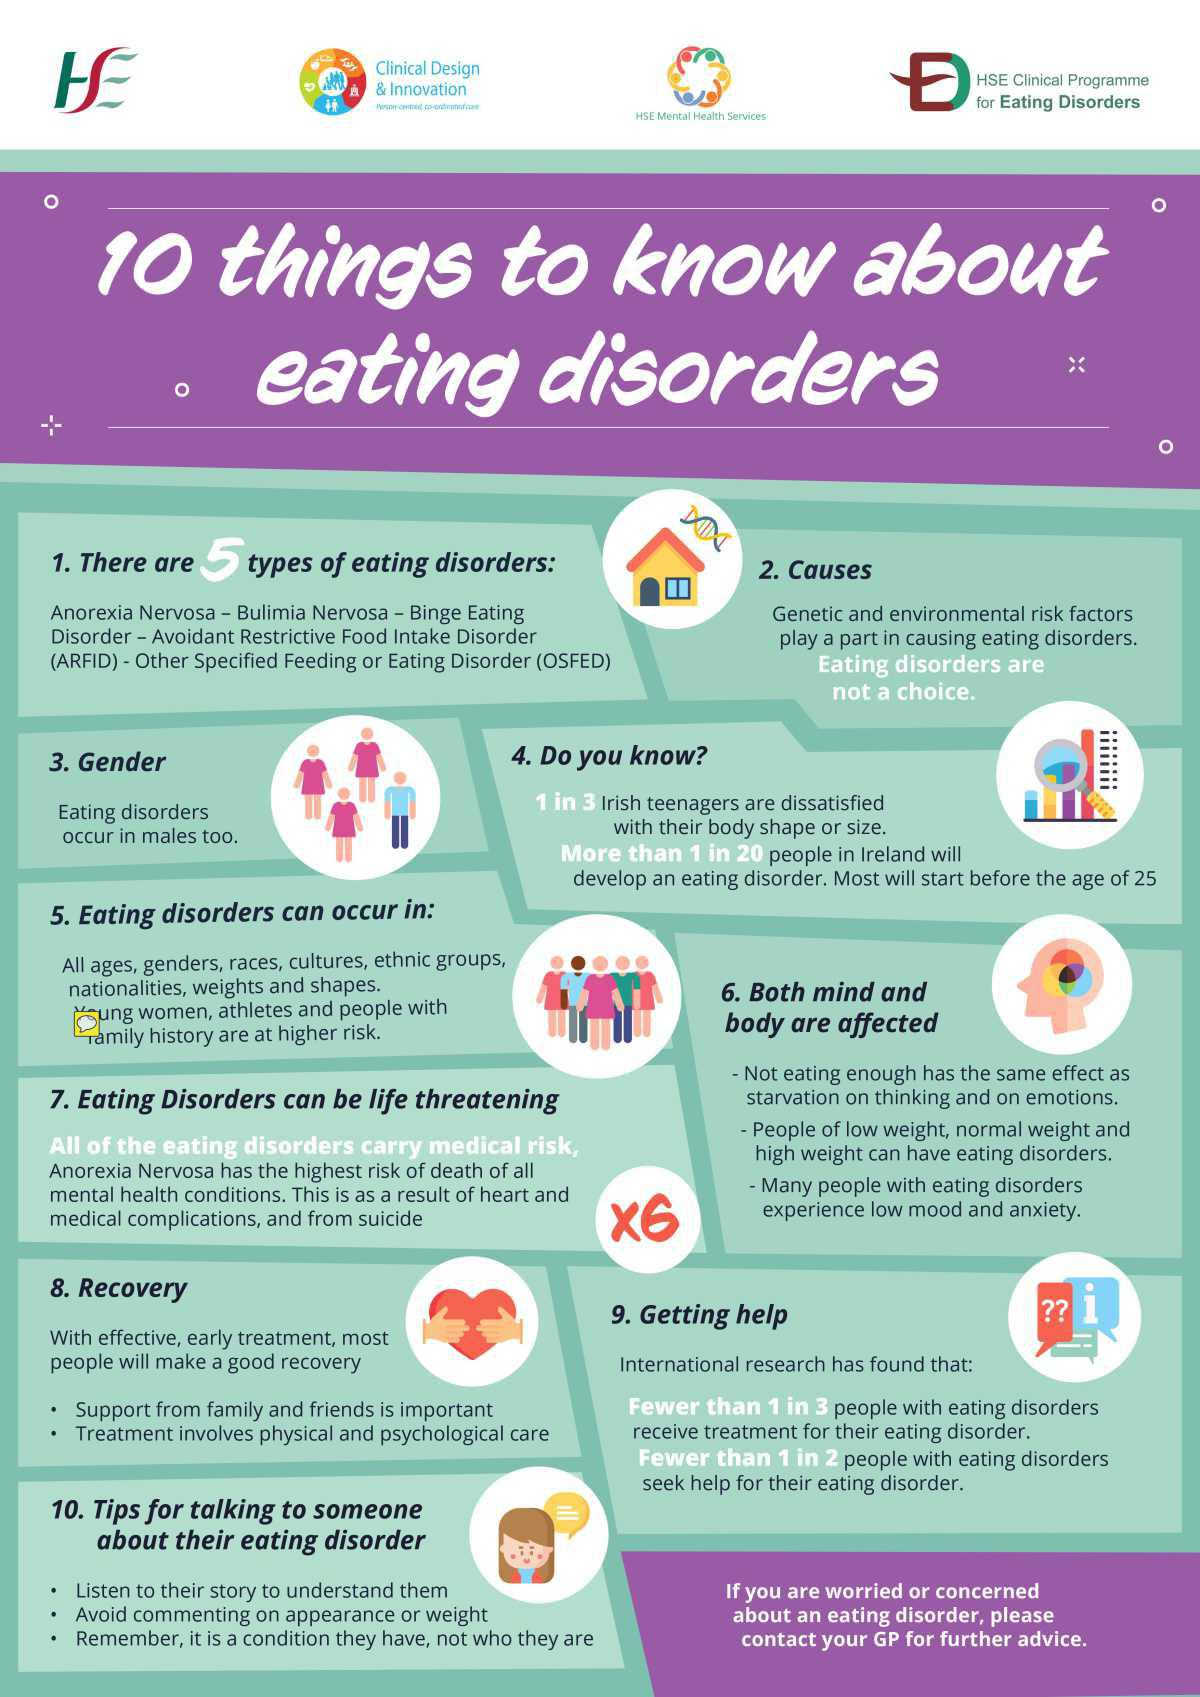 10 things to know about eating disorders